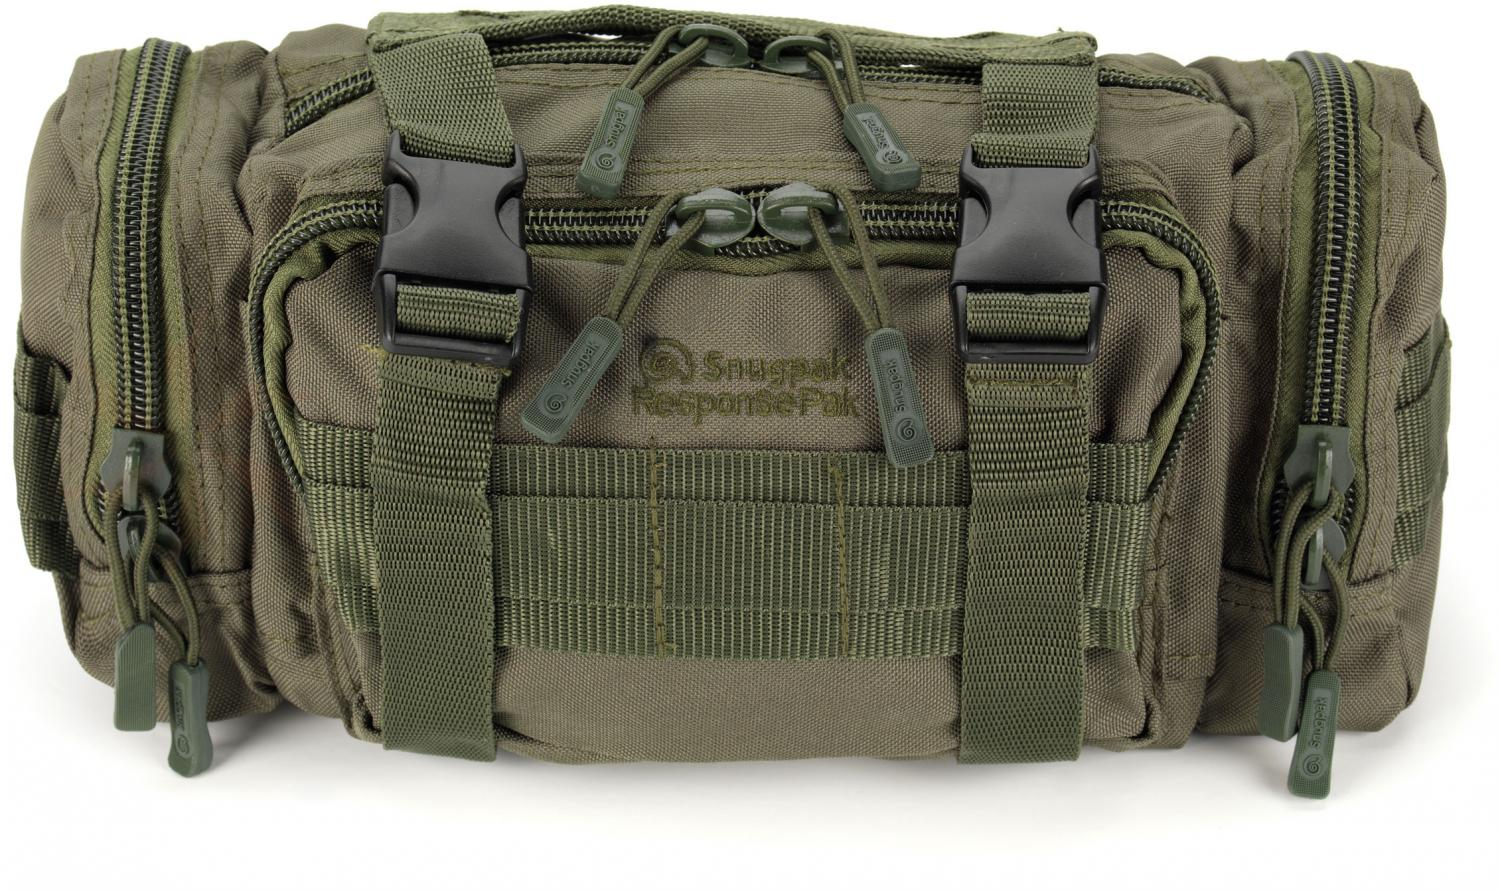 Proforce Response Pak Olive Backpack